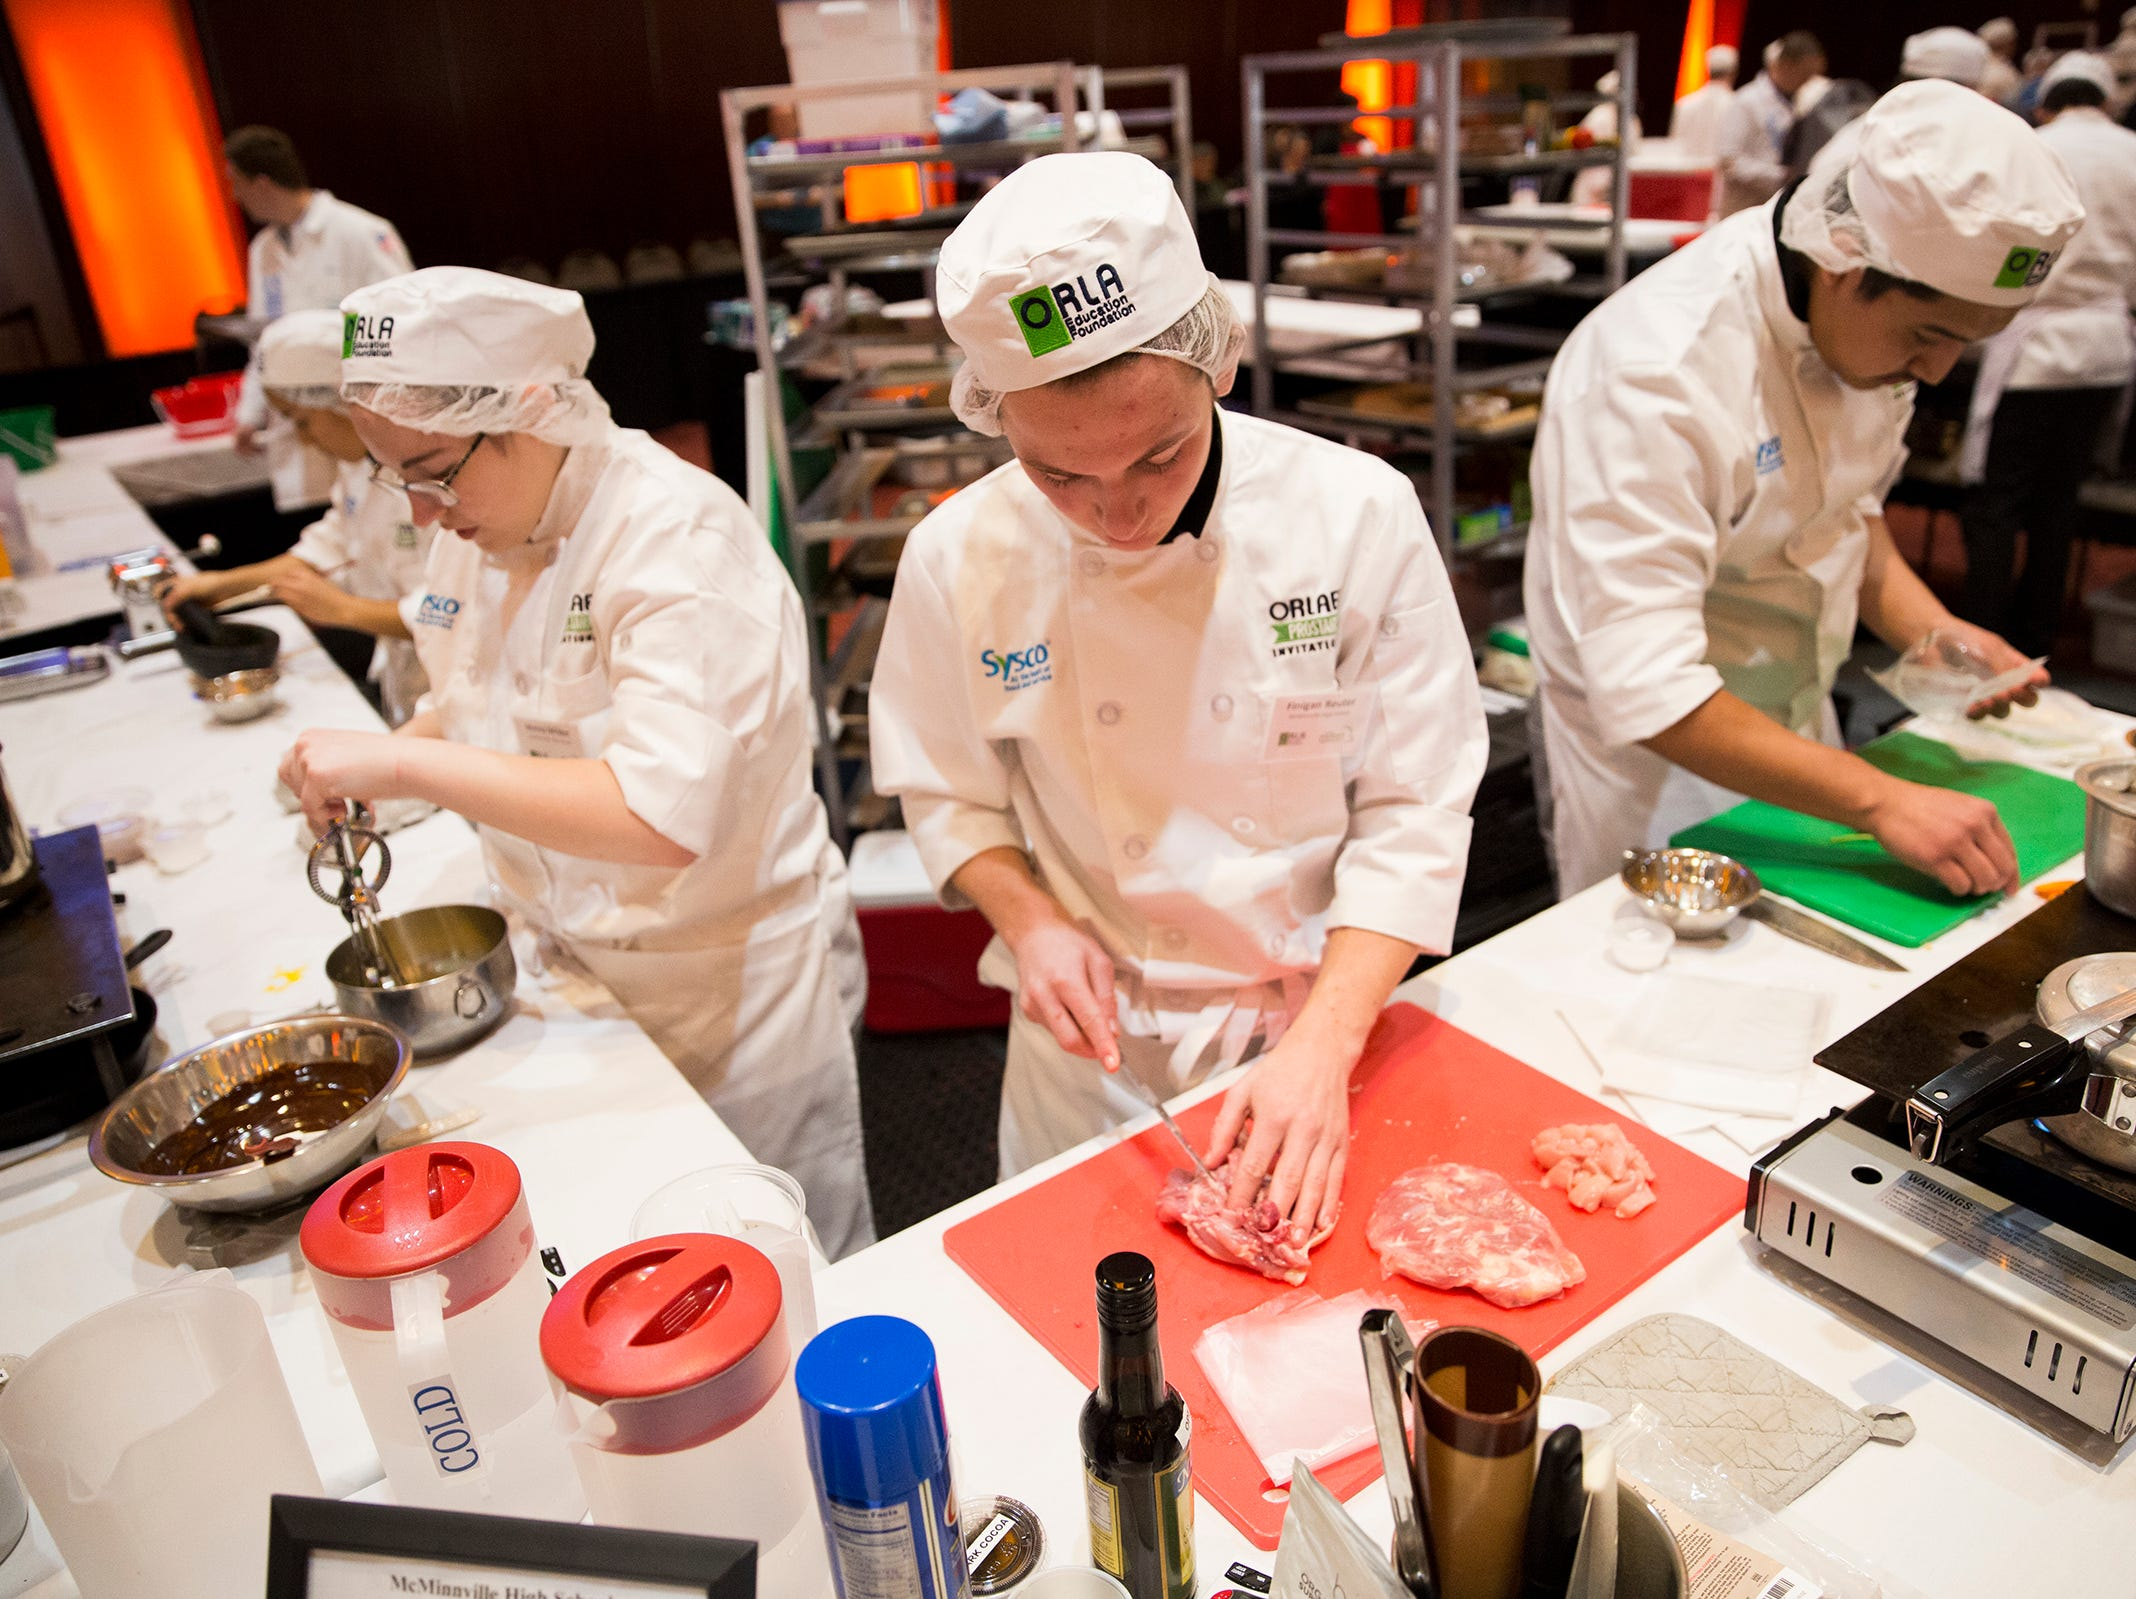 McMinnville High School culinary students prepare their dishes during the ORLAEF's ProStart Invitational, a statewide high school culinary competition, at the Salem Convention Center on March 18, 2019.